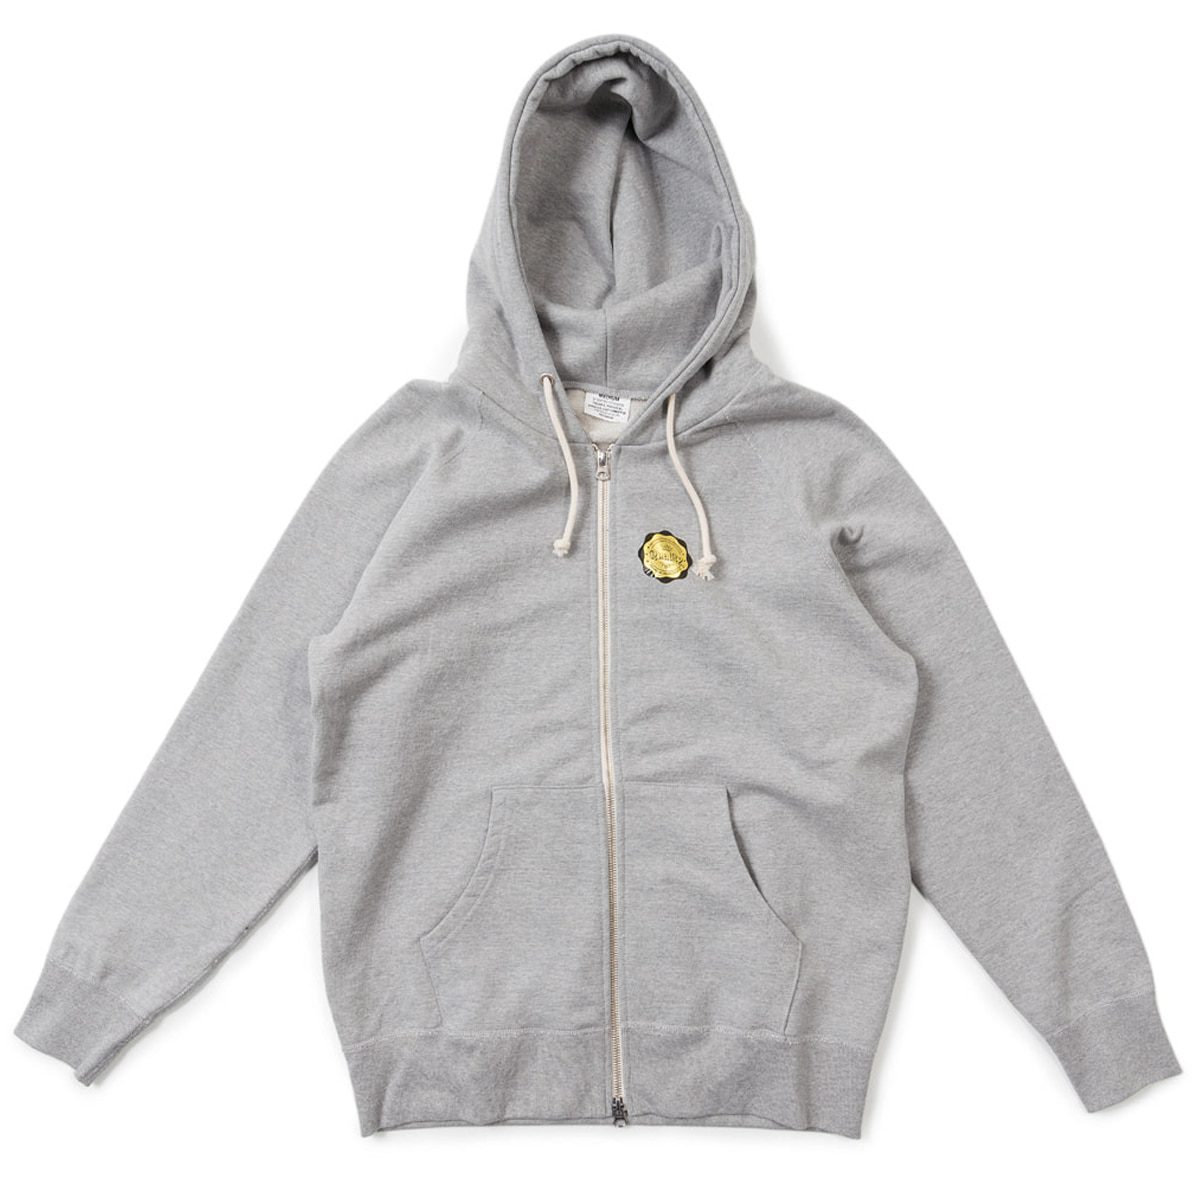 [BIGUNION] GYM SWEAT PARKA 'GREY'